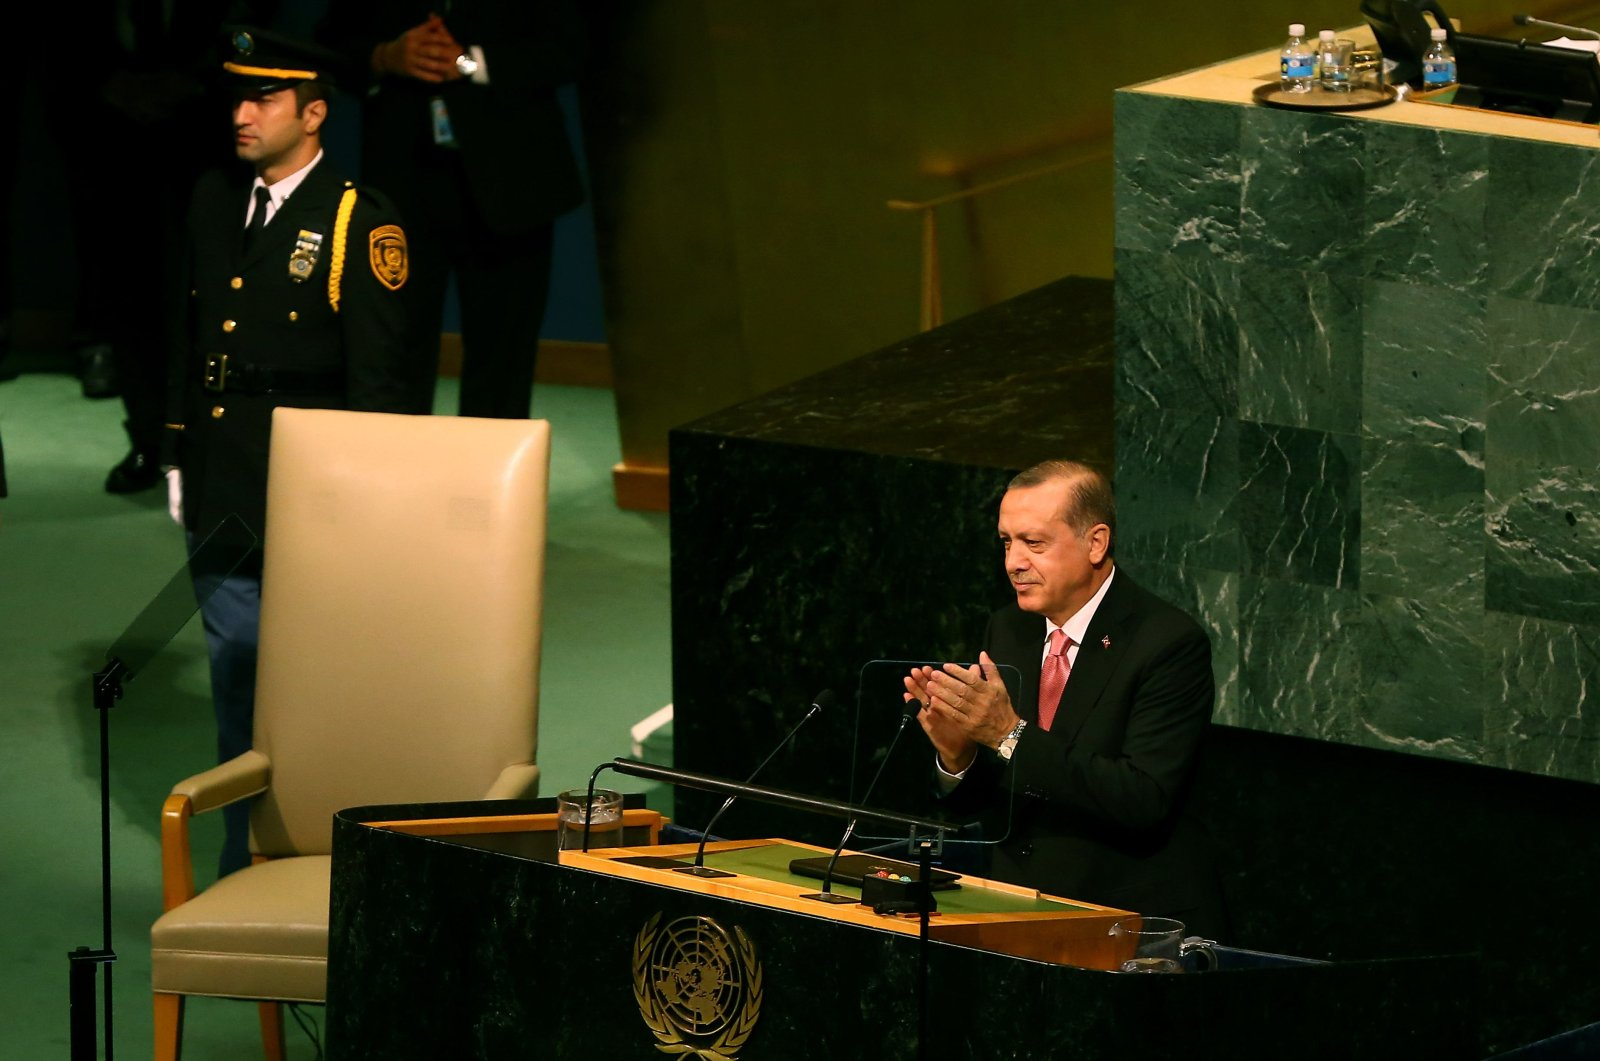 President Recep Tayyip Erdoğan speaks during the United Nations General Assembly in New York, New York, U.S., Sept. 19, 2017. (Photo provided by the Presidency of the Republic of Turkey)